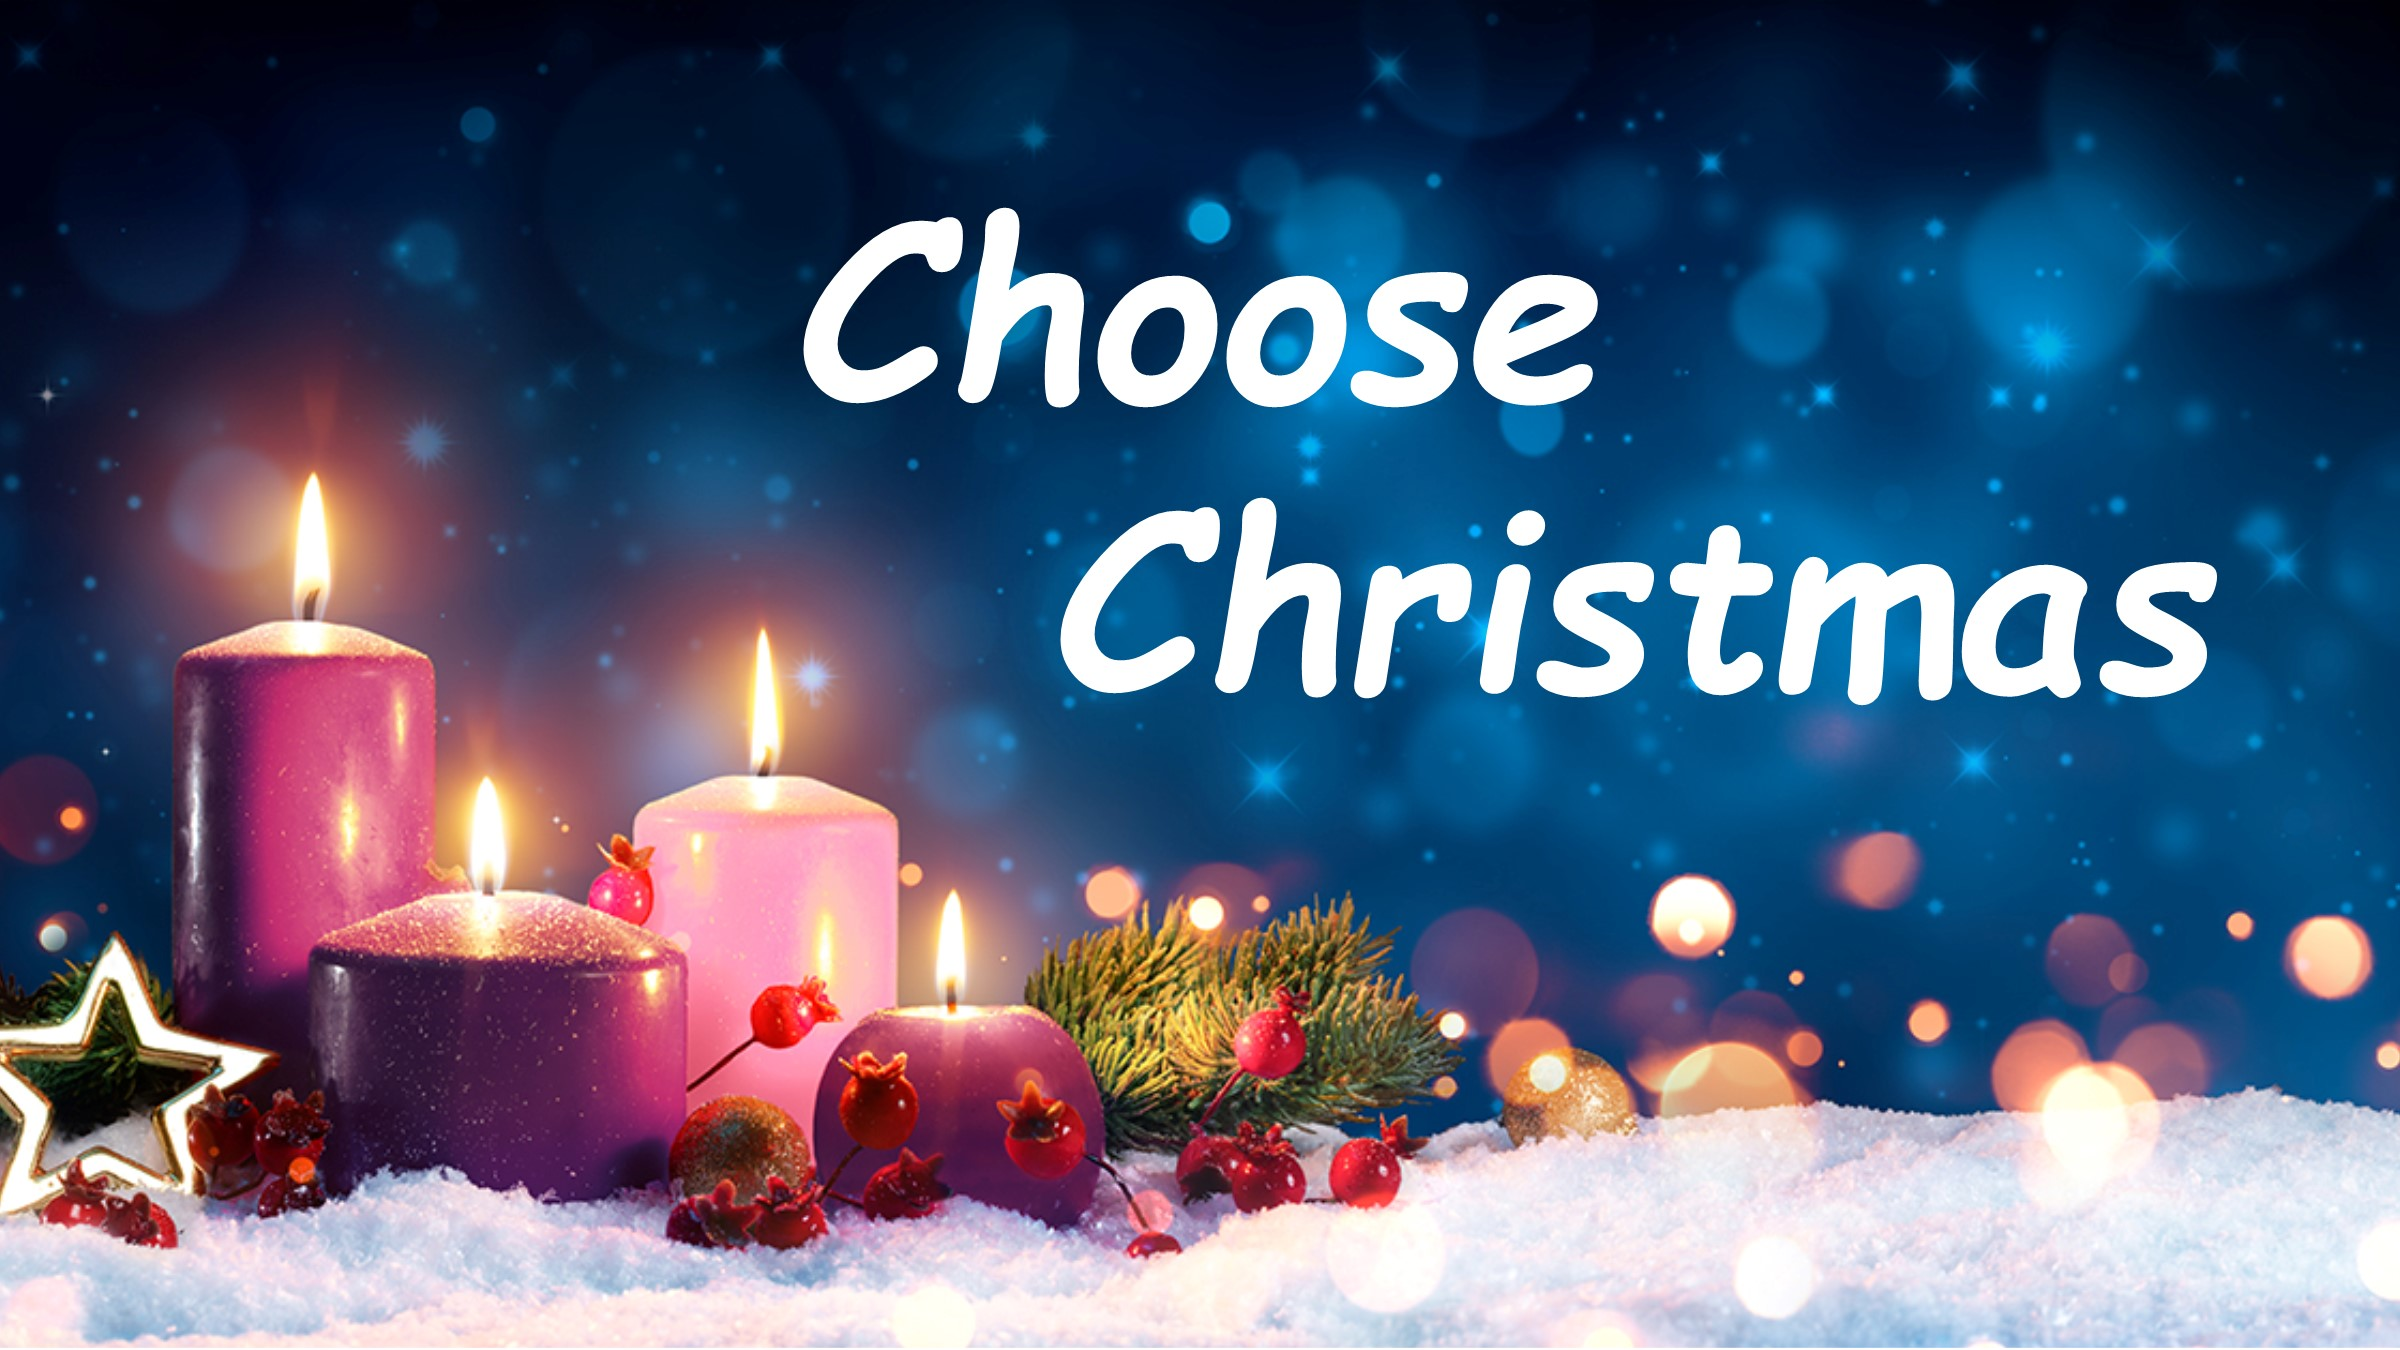 Choose Christmas